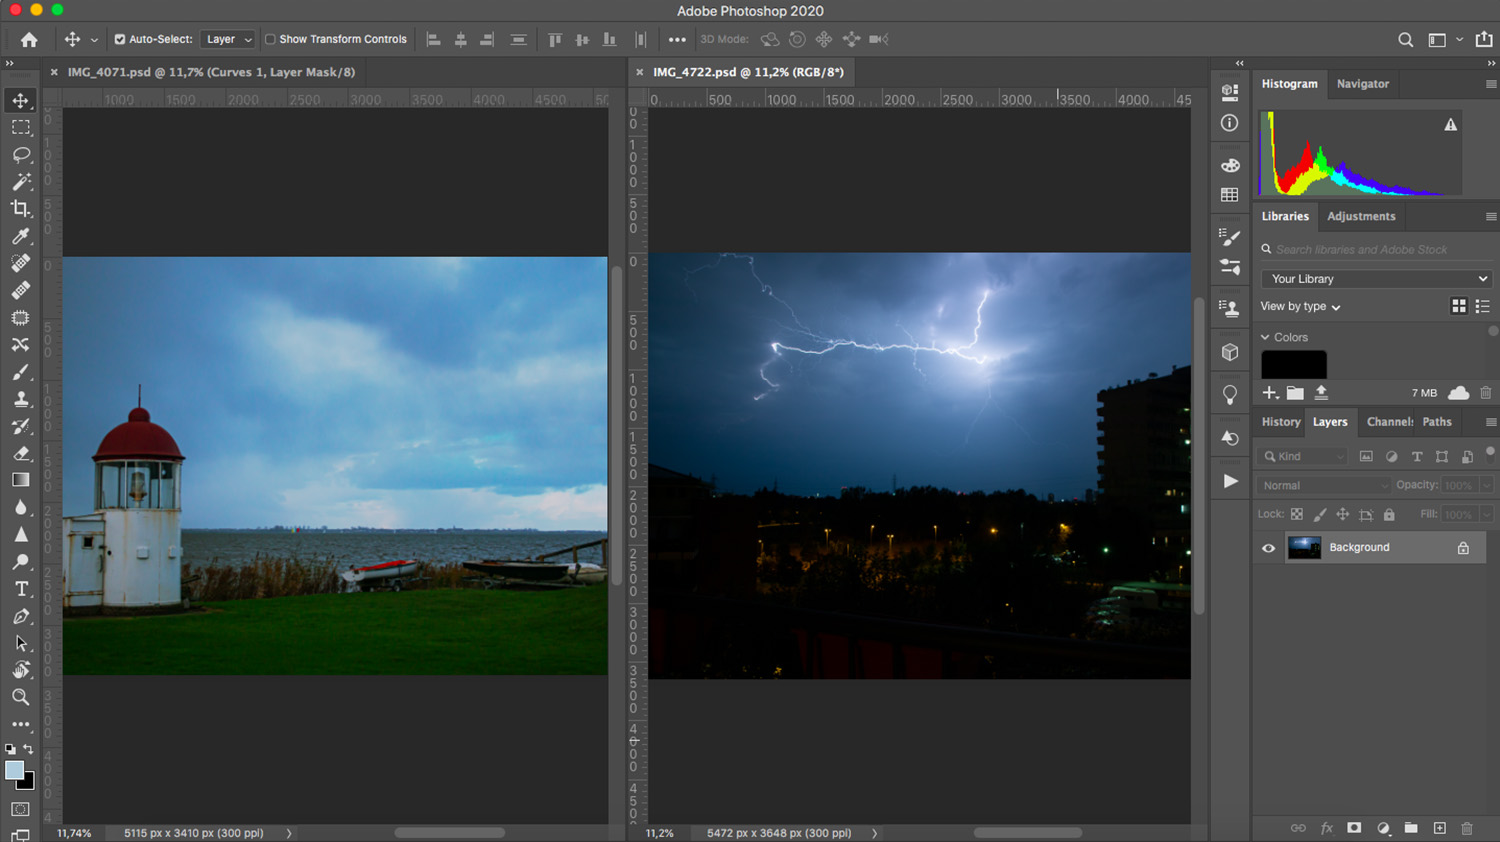 Use Photoshop to composite a thunderstorm